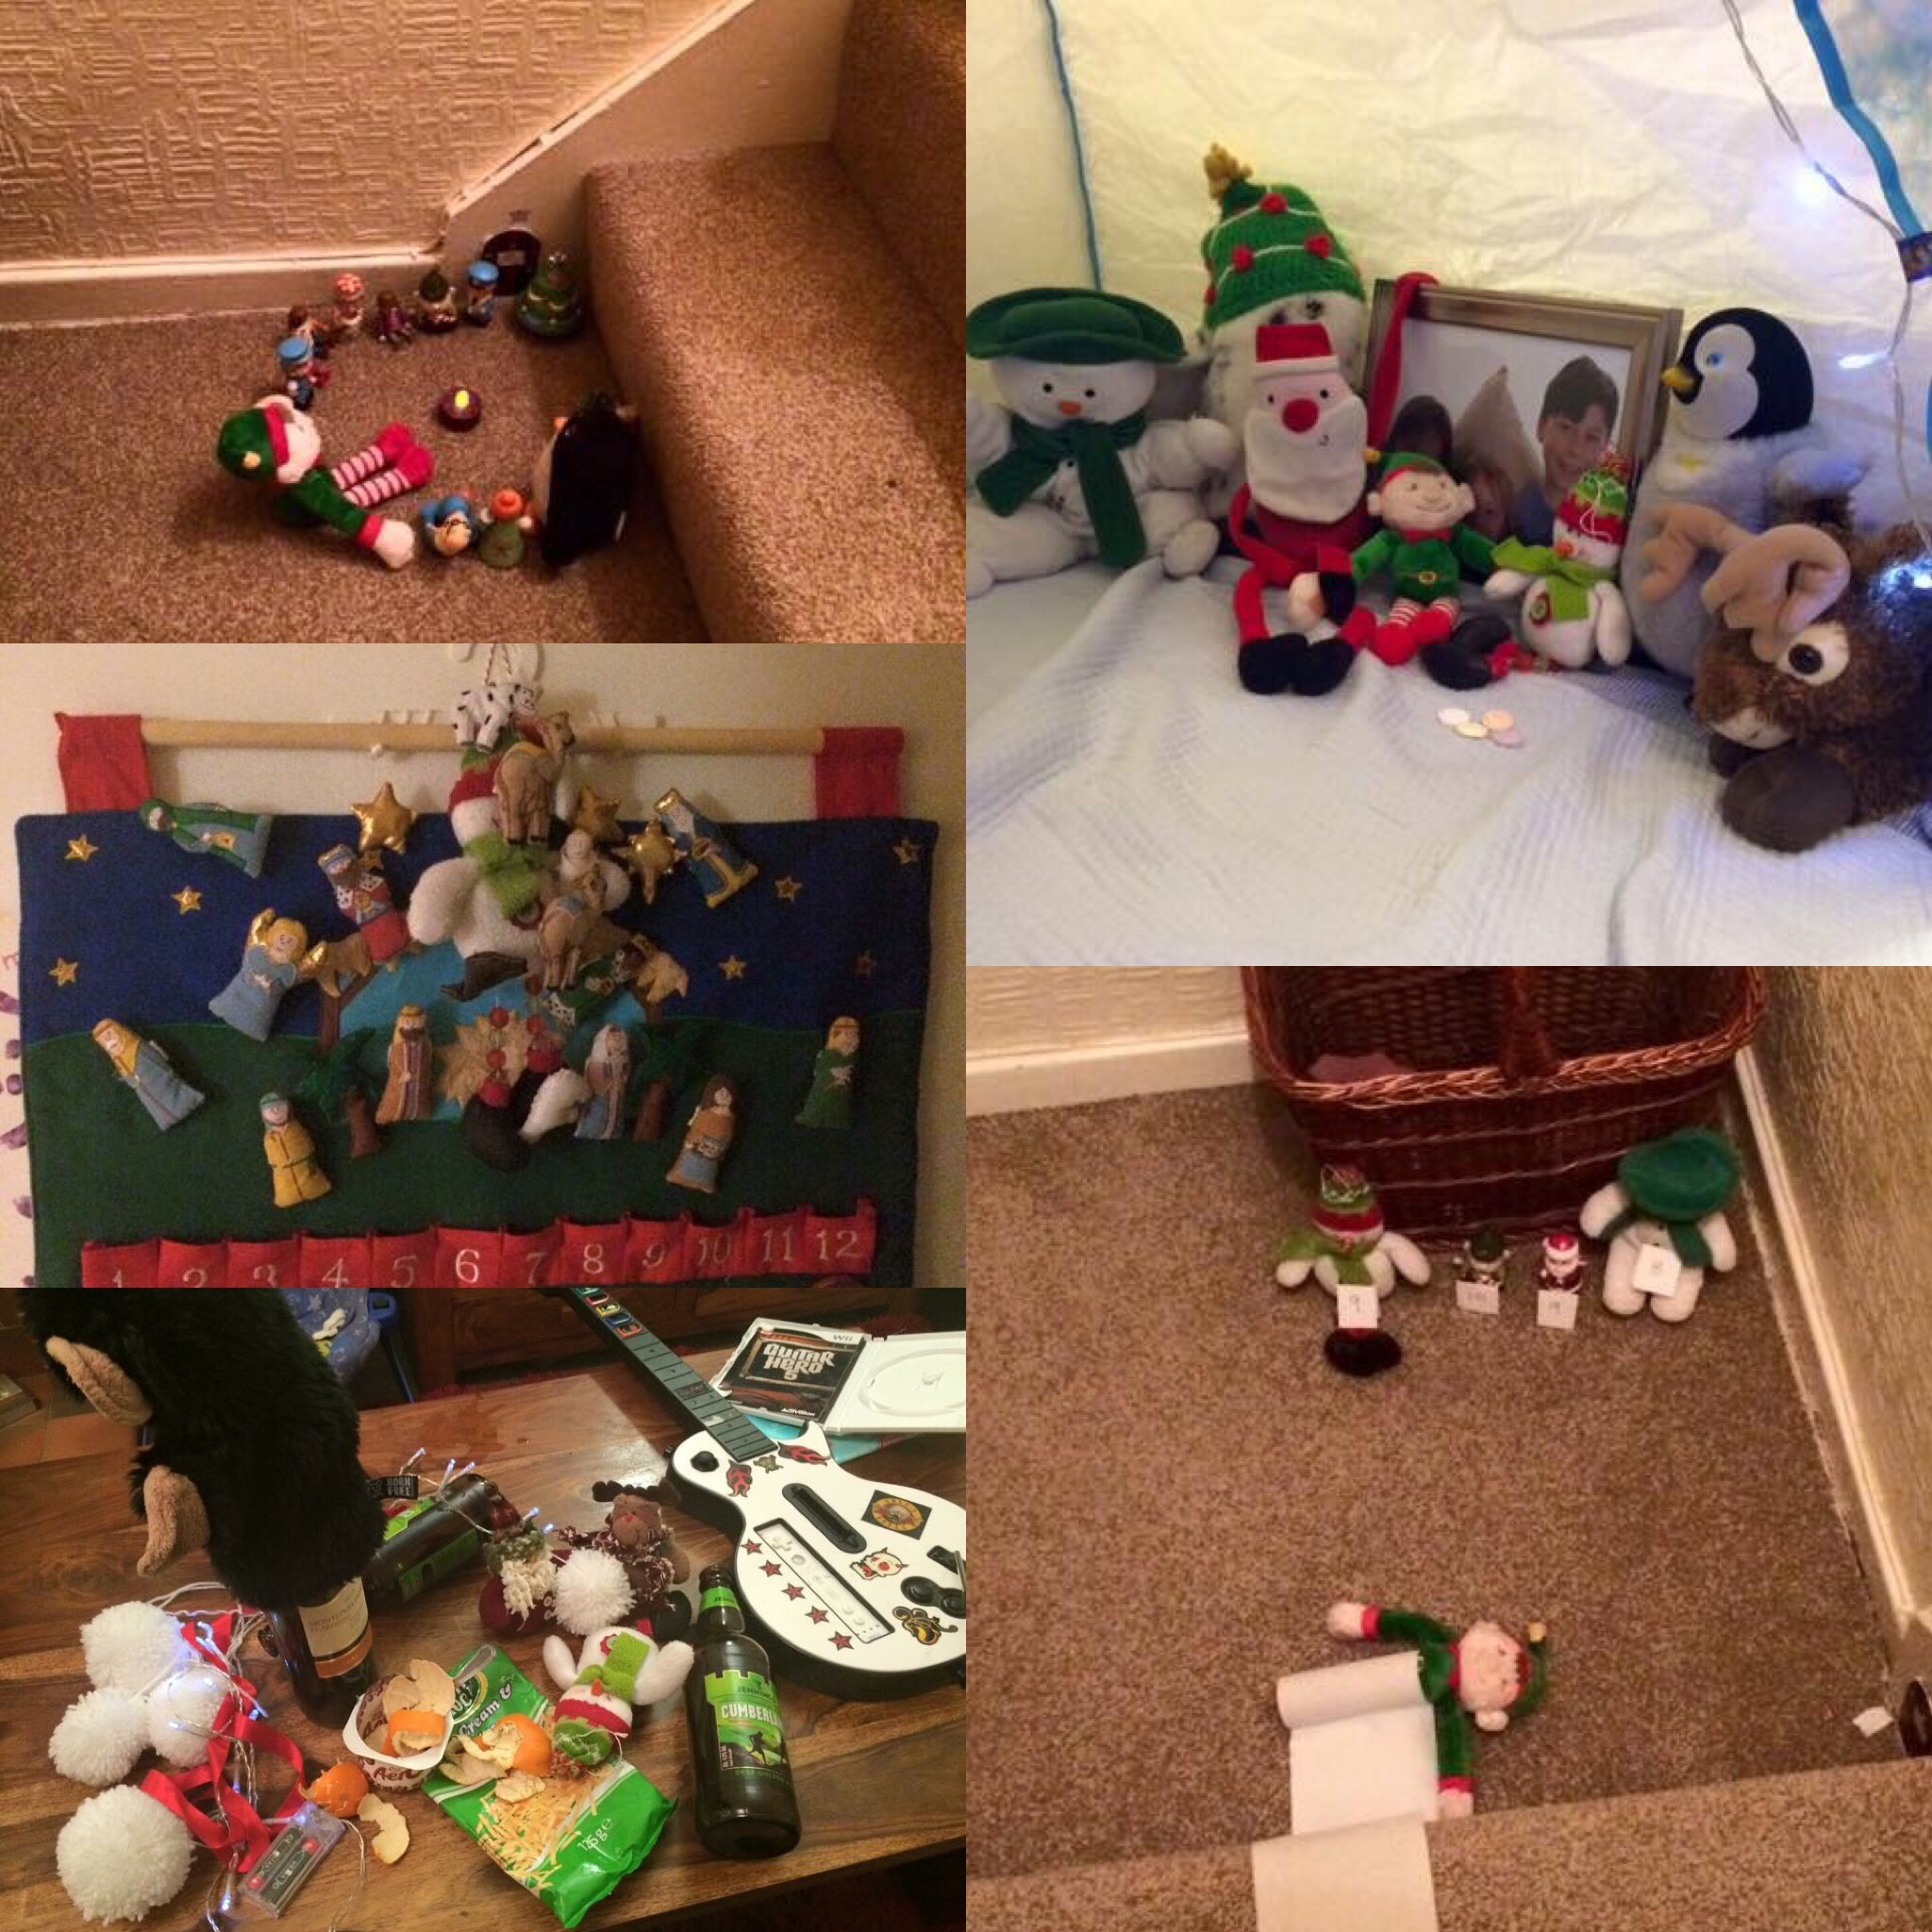 the elf being naughty